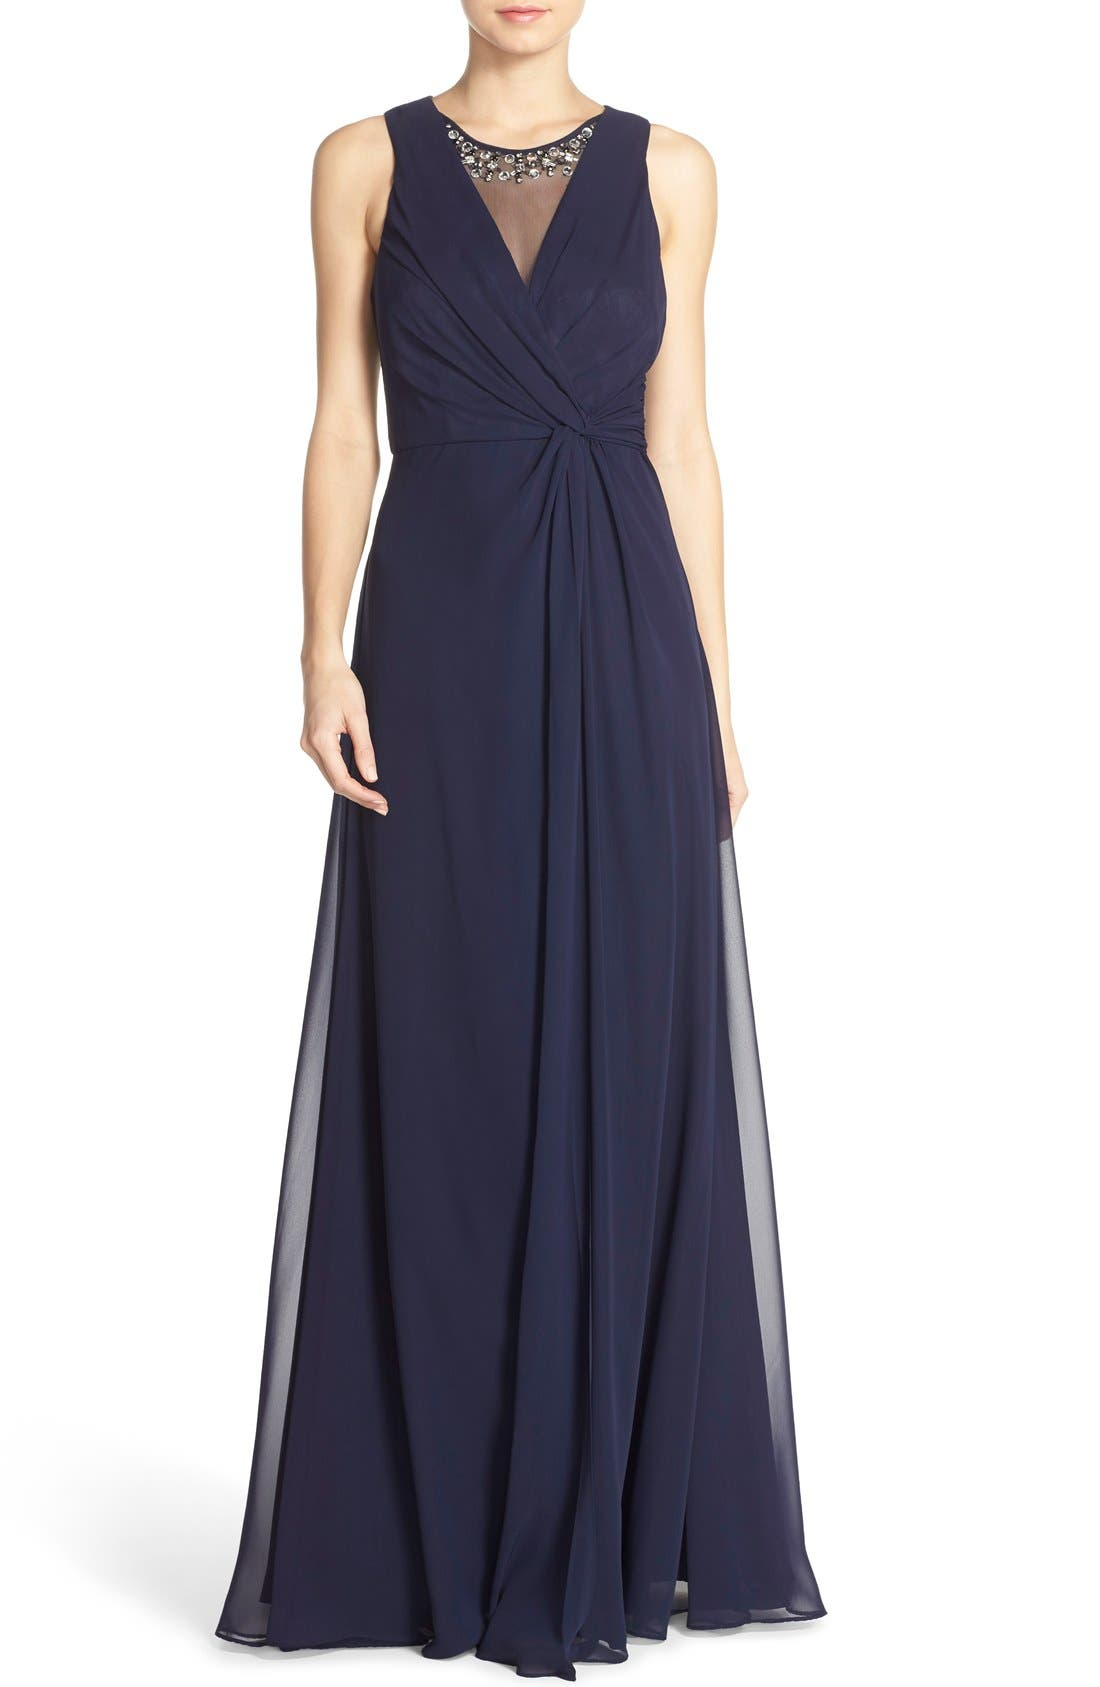 Main Image - Eliza J Embellished Chiffon Fit & Flare Gown